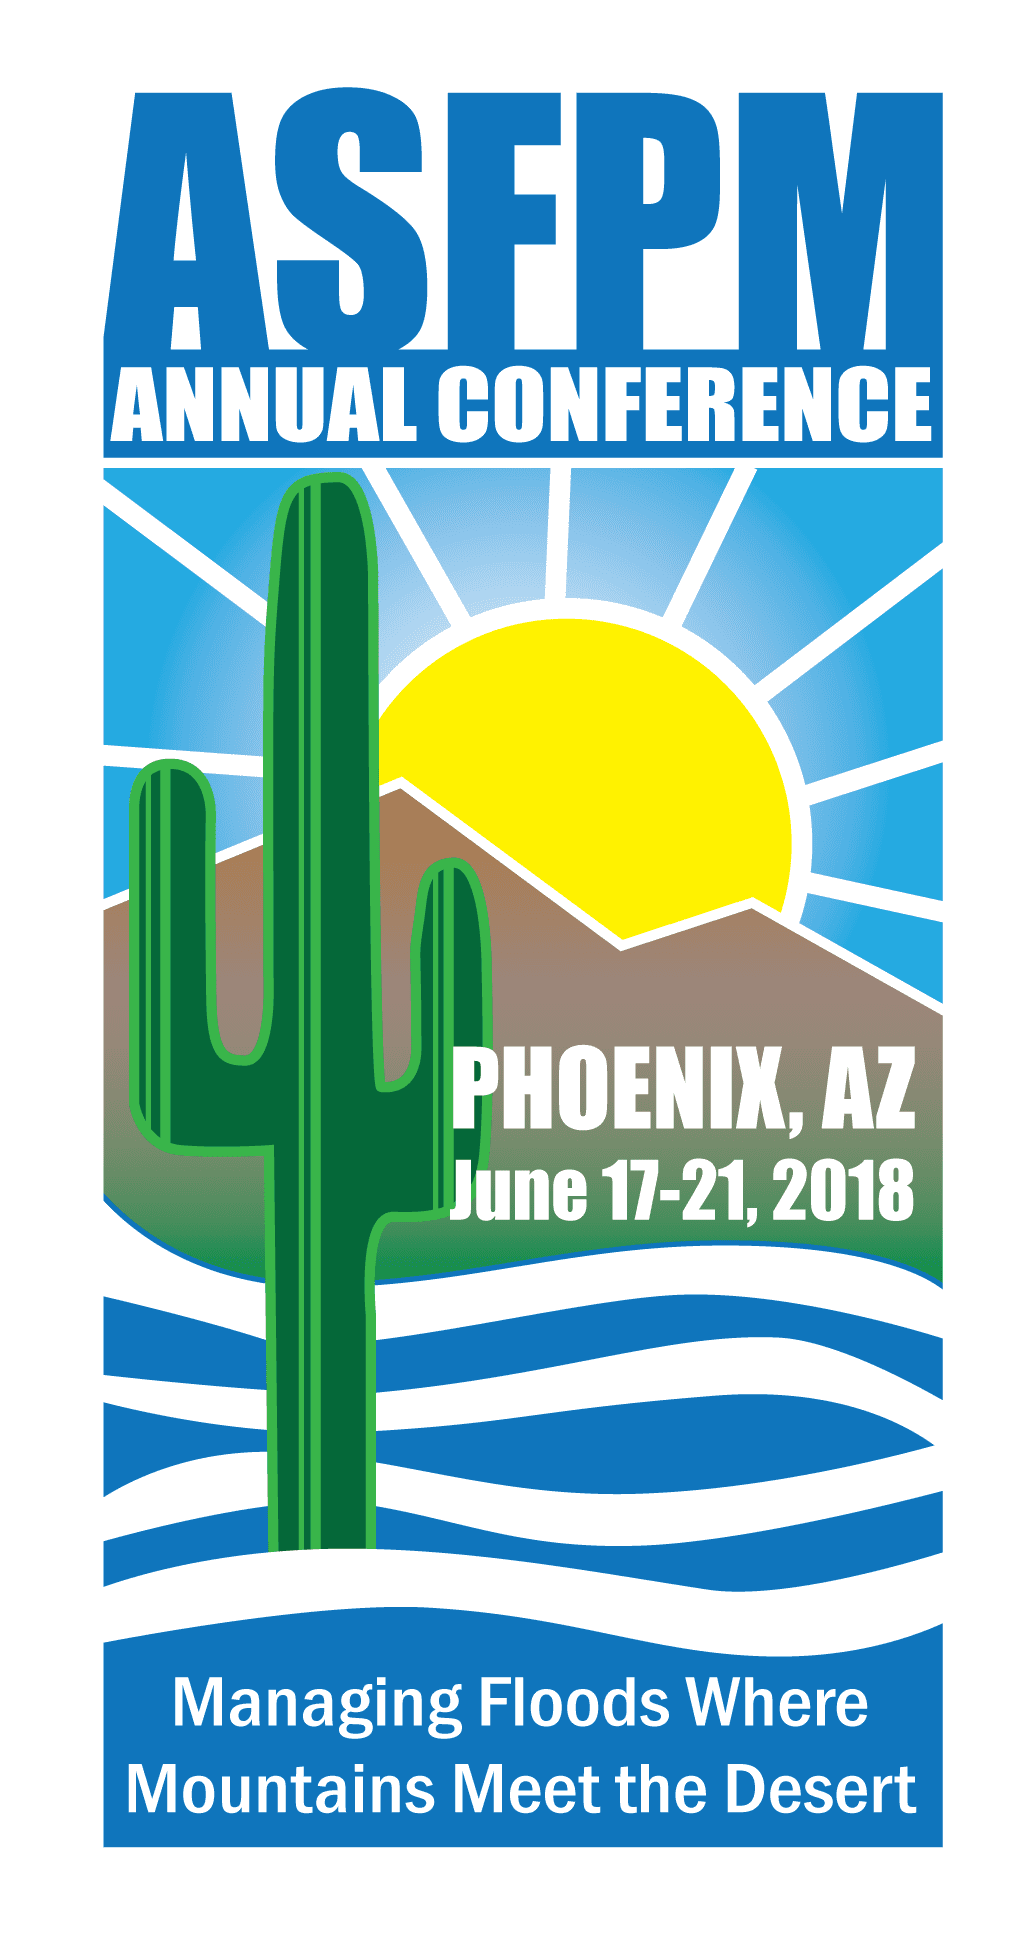 ASFPM Annual National Conference Managing Floods Where Mountains Meet the Desert Phoenix, AZ June 17-21, 2018